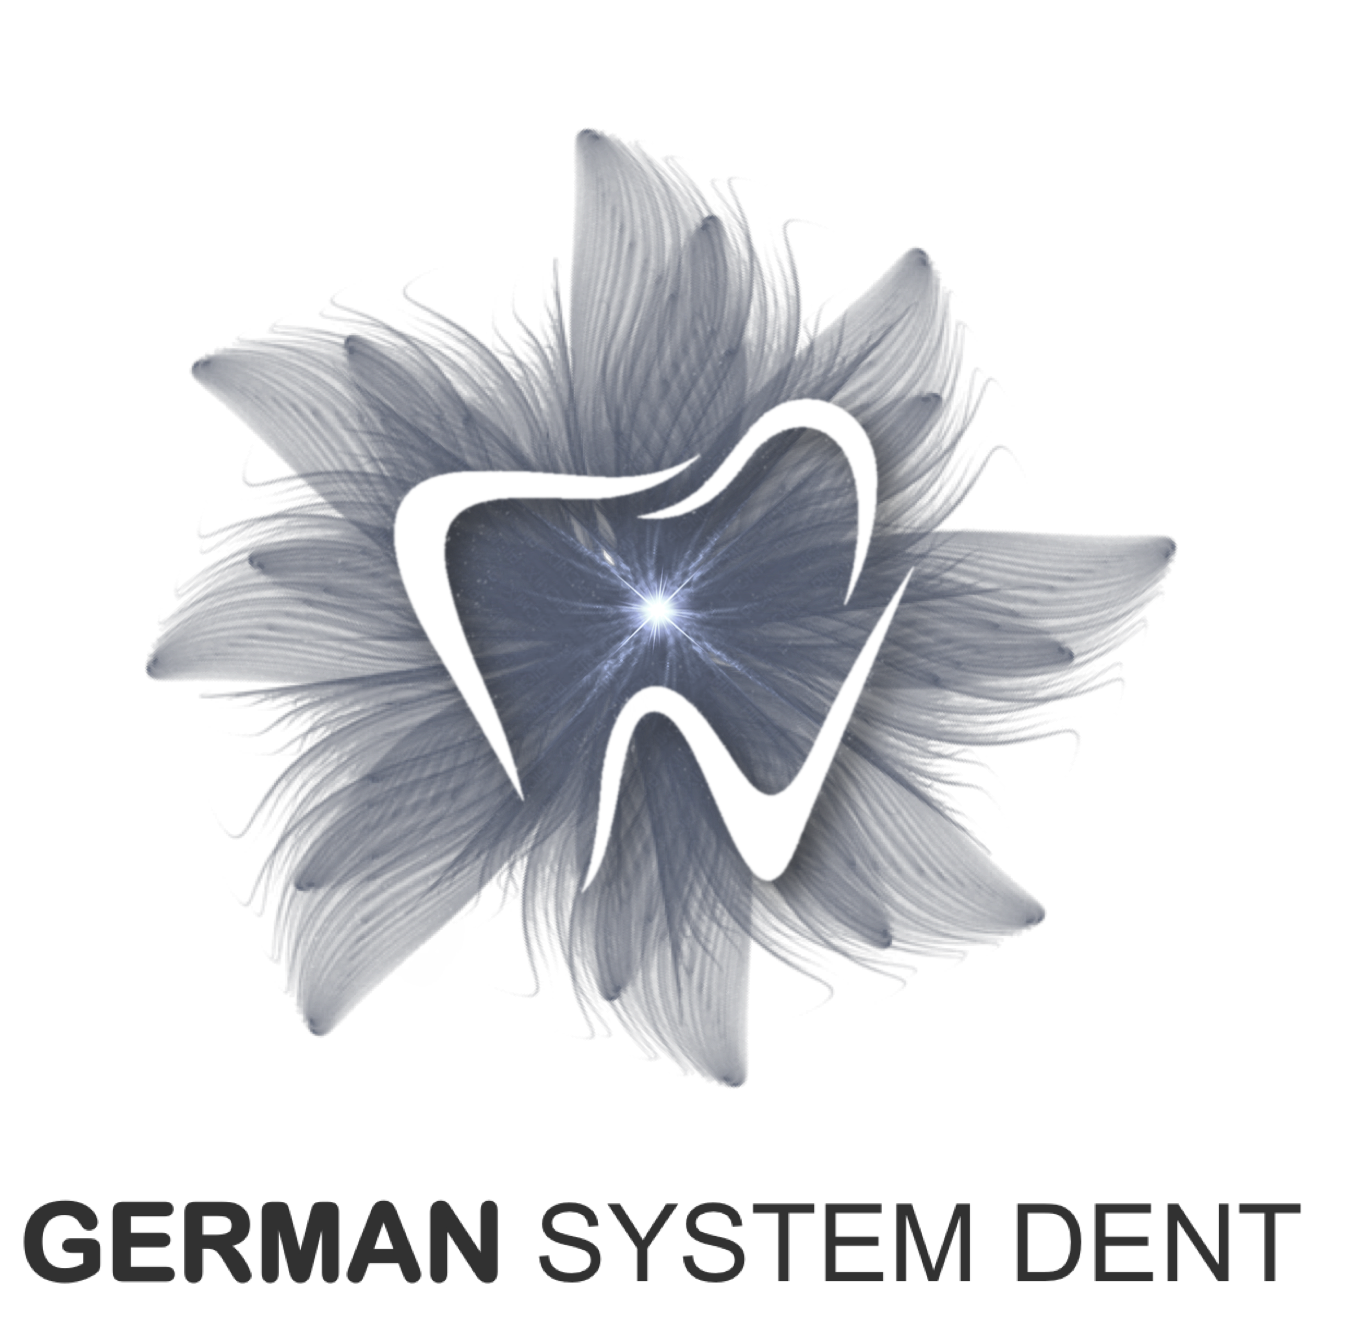 cropped-german-system-dent-logo-gsd-2.png